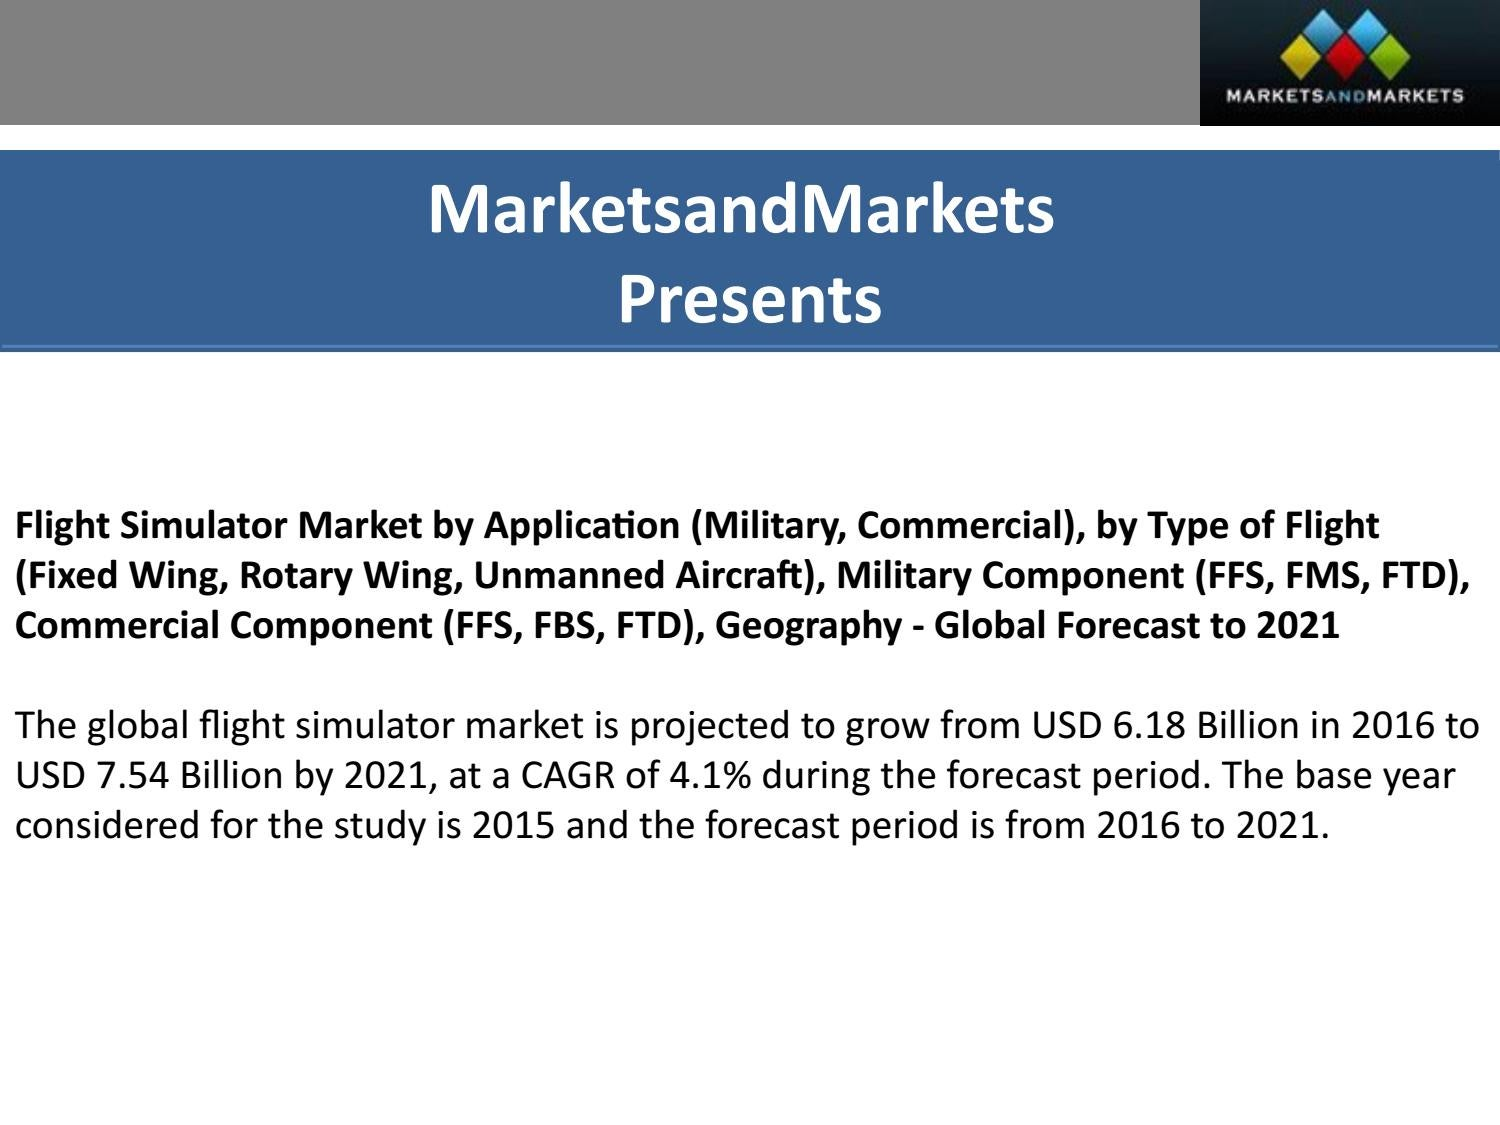 Flight Simulator Market by Application (Military, Commercial